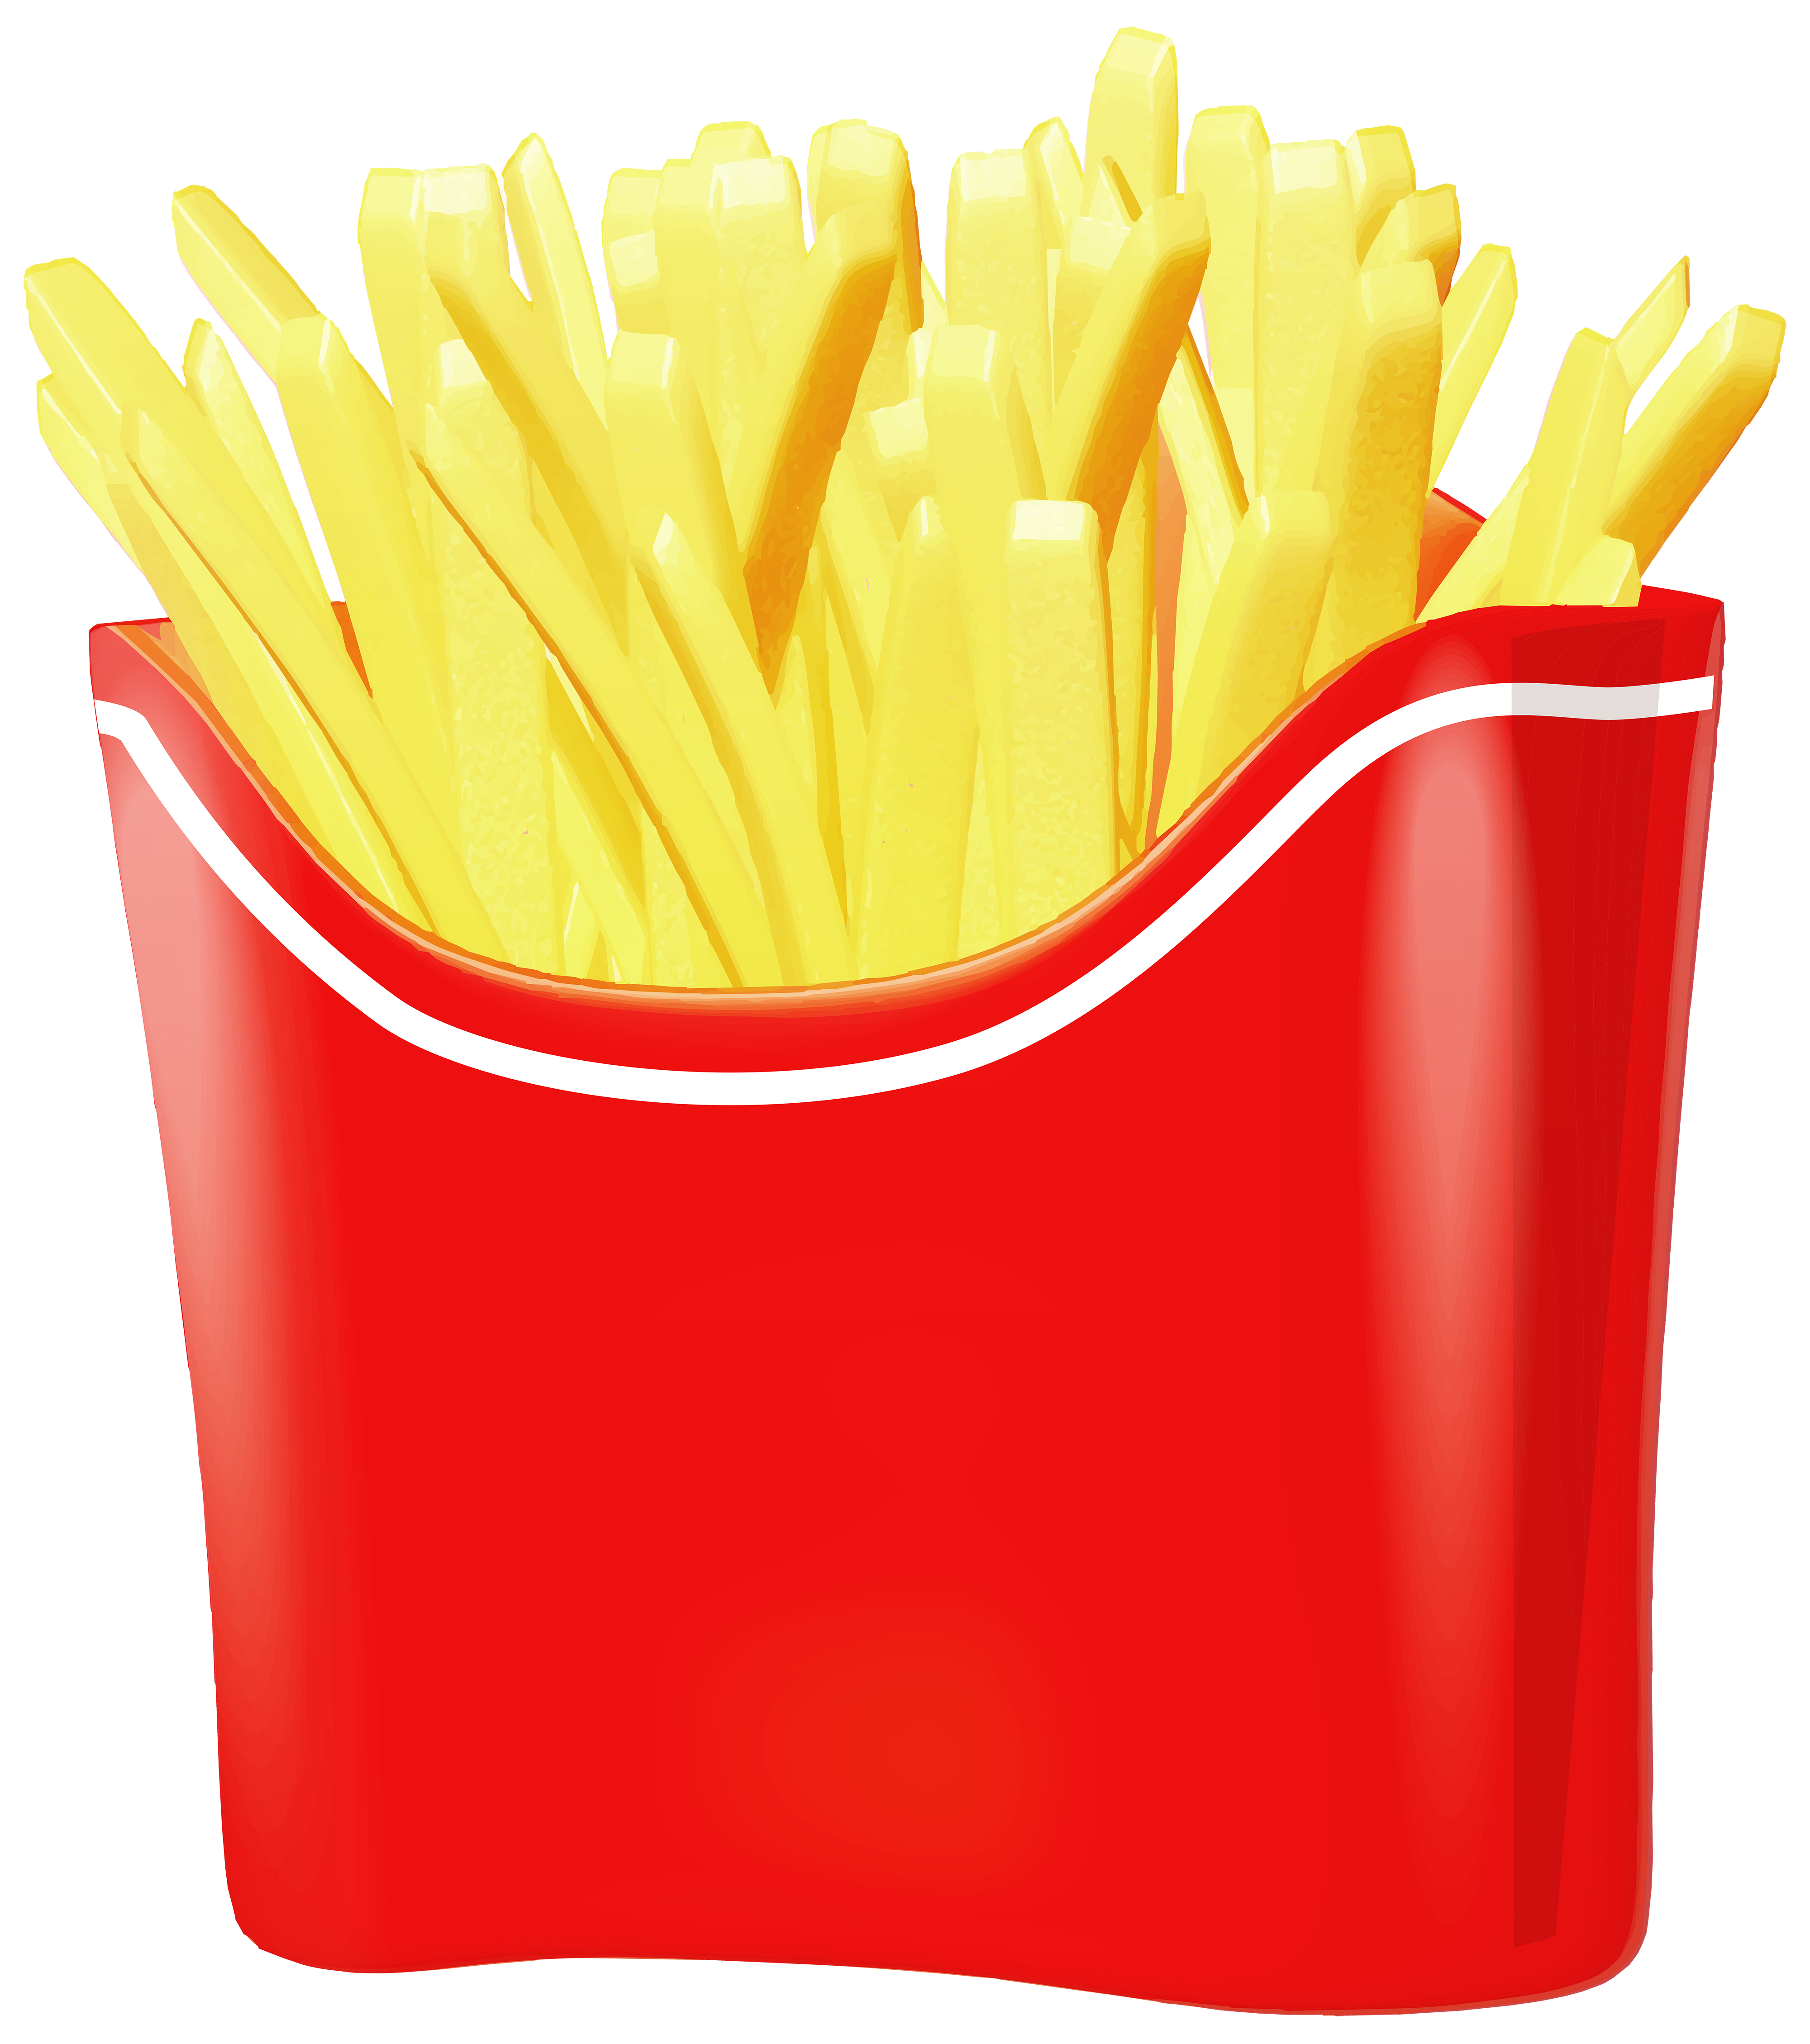 French clipart cheese french. Menu cliparthot of chips